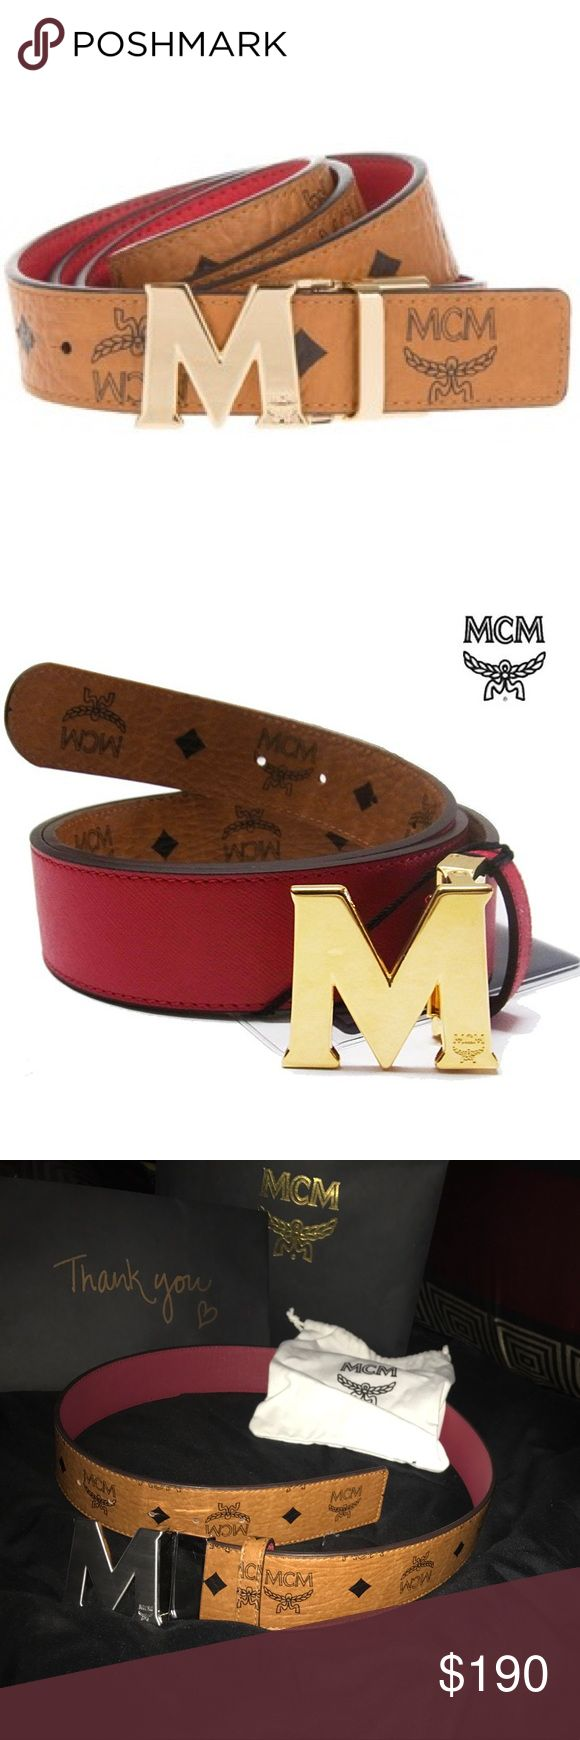 Authentic MCM Belt Authentic Reversible MCM Belt. Genuine leather. Worn a few times. Selling because I want the black one instead. Practically new. Comes with bag and mesh bag MCM Accessories Belts